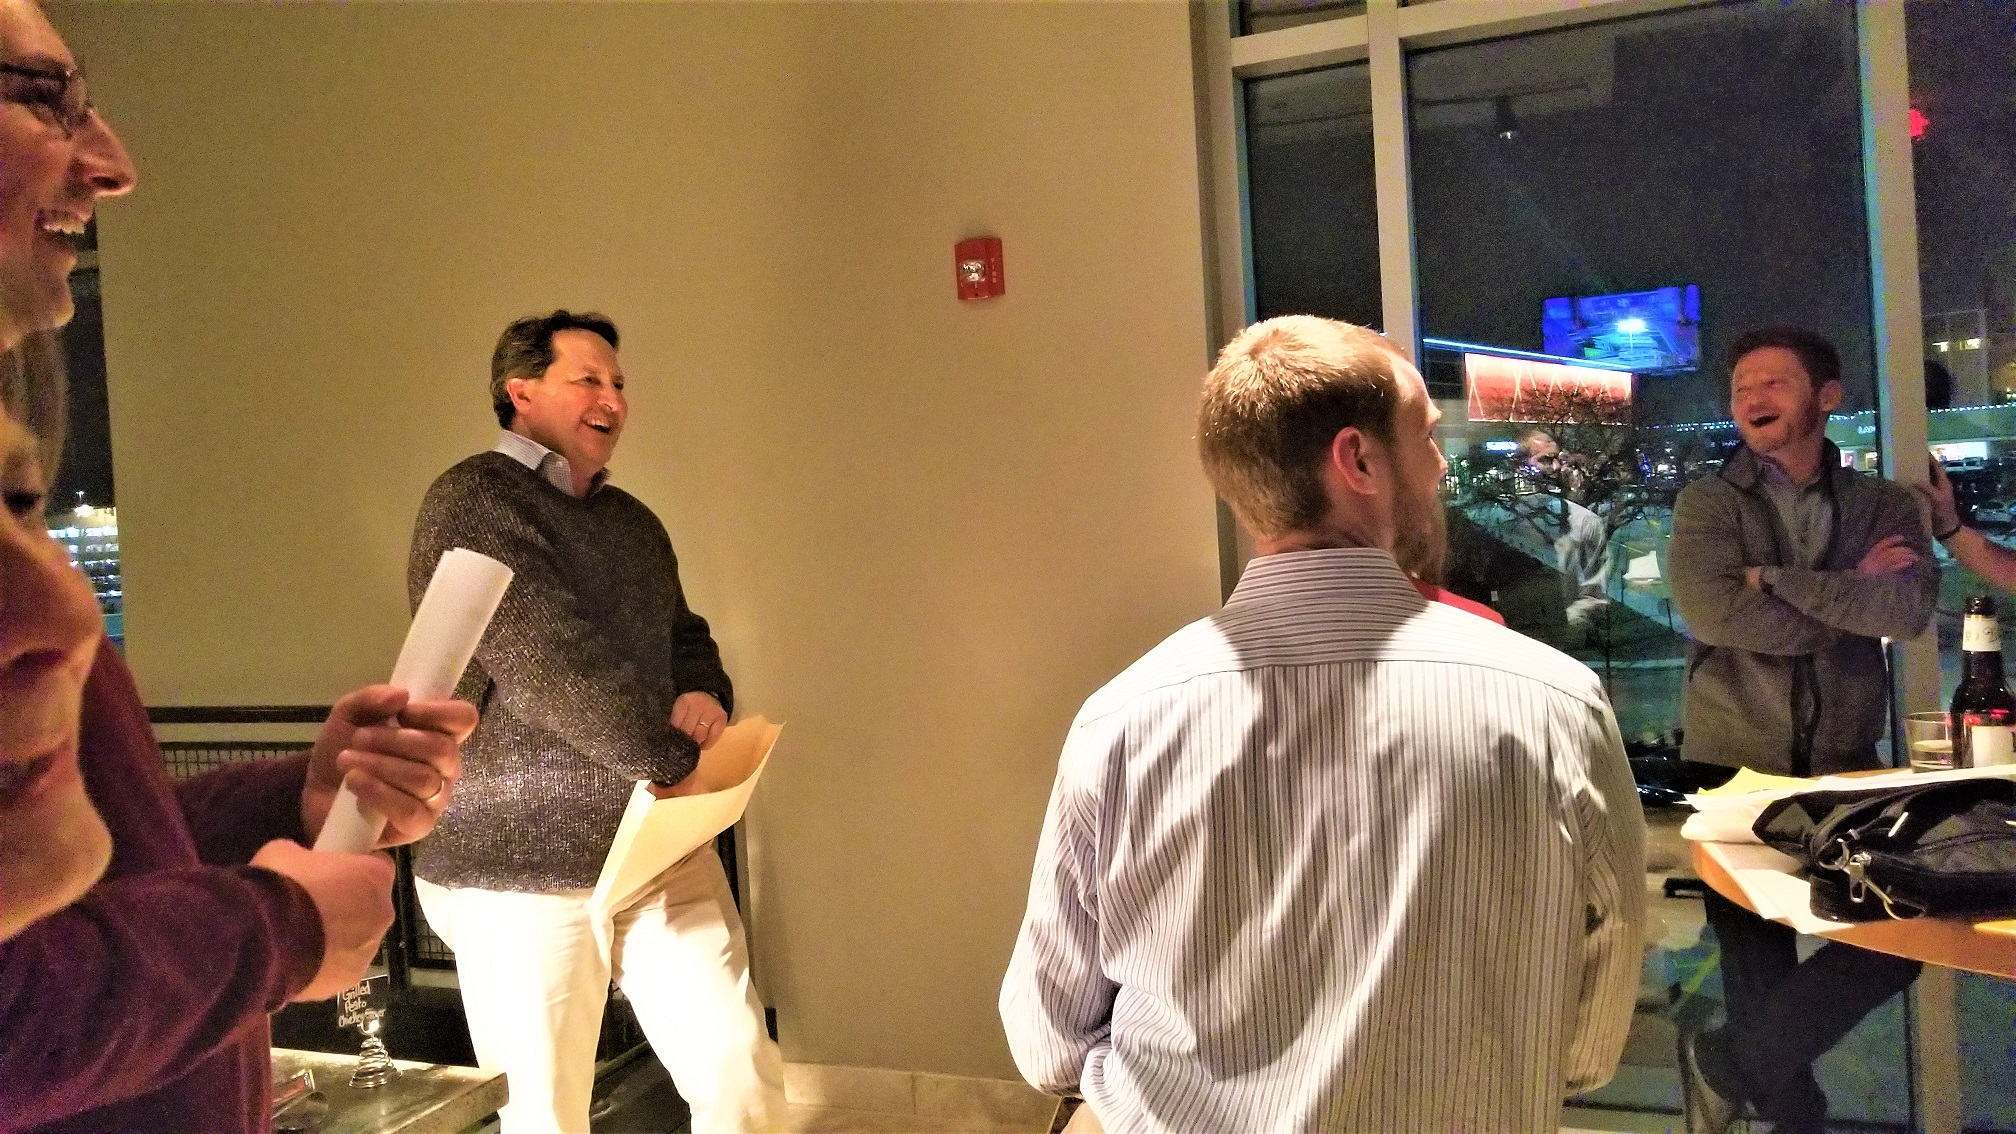 Art Rendak created a fun, fast-paced trivia game for the IMC team during the 2018 Holiday Party.